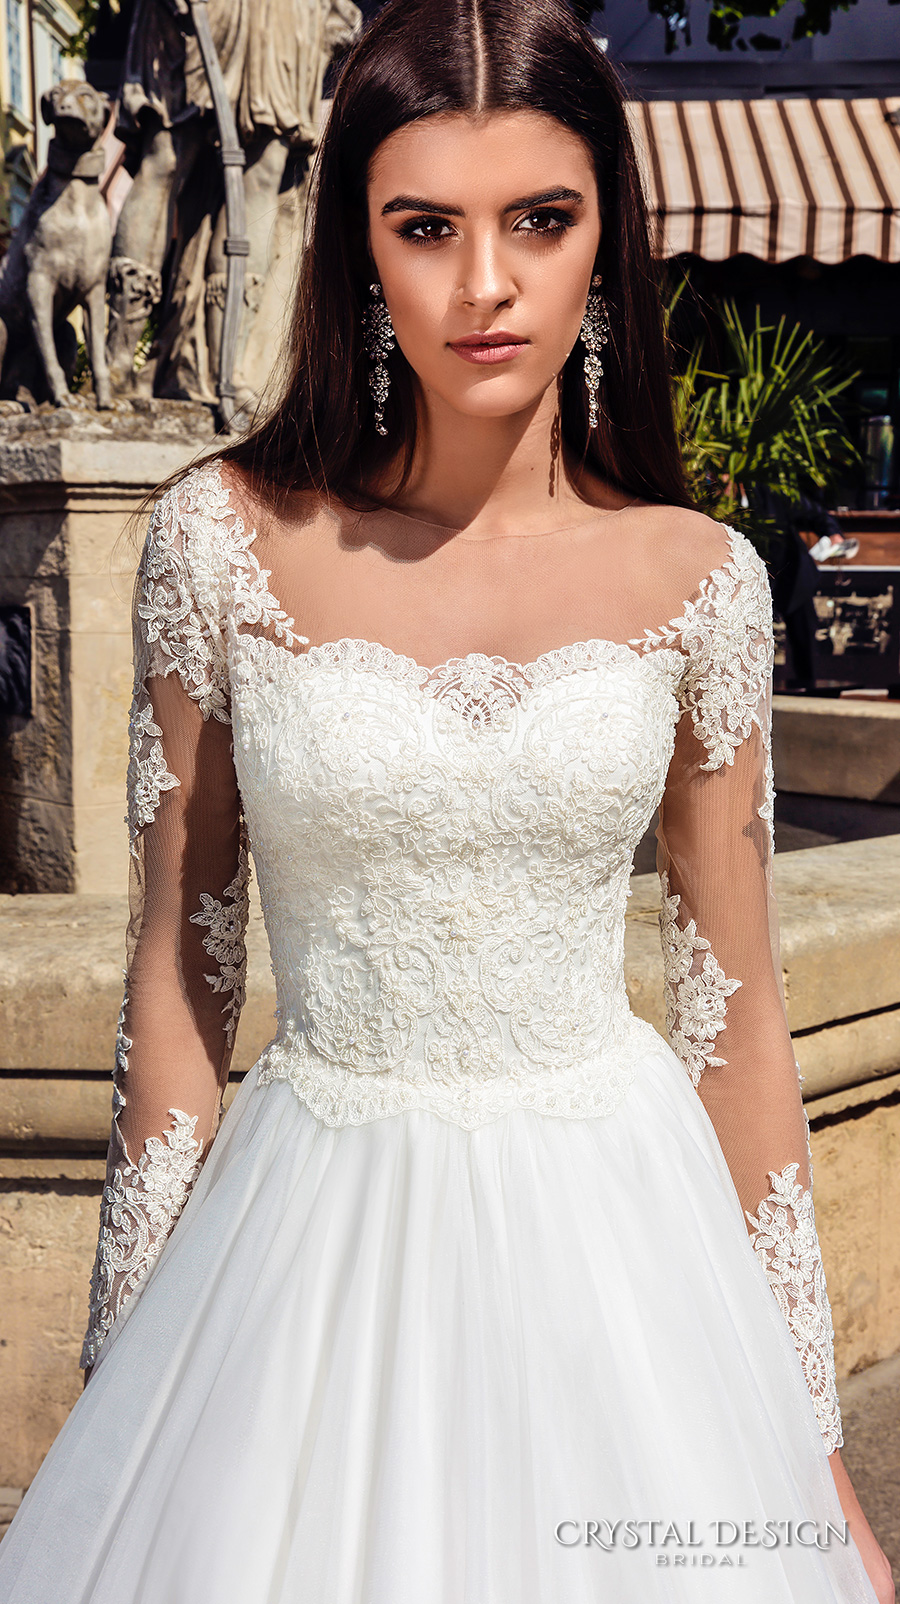 crystal design bridal 2016 illusion long sleeves sweetheart neckline lace bodice pretty princess ball gown wedding dress chapel train (alika) zv